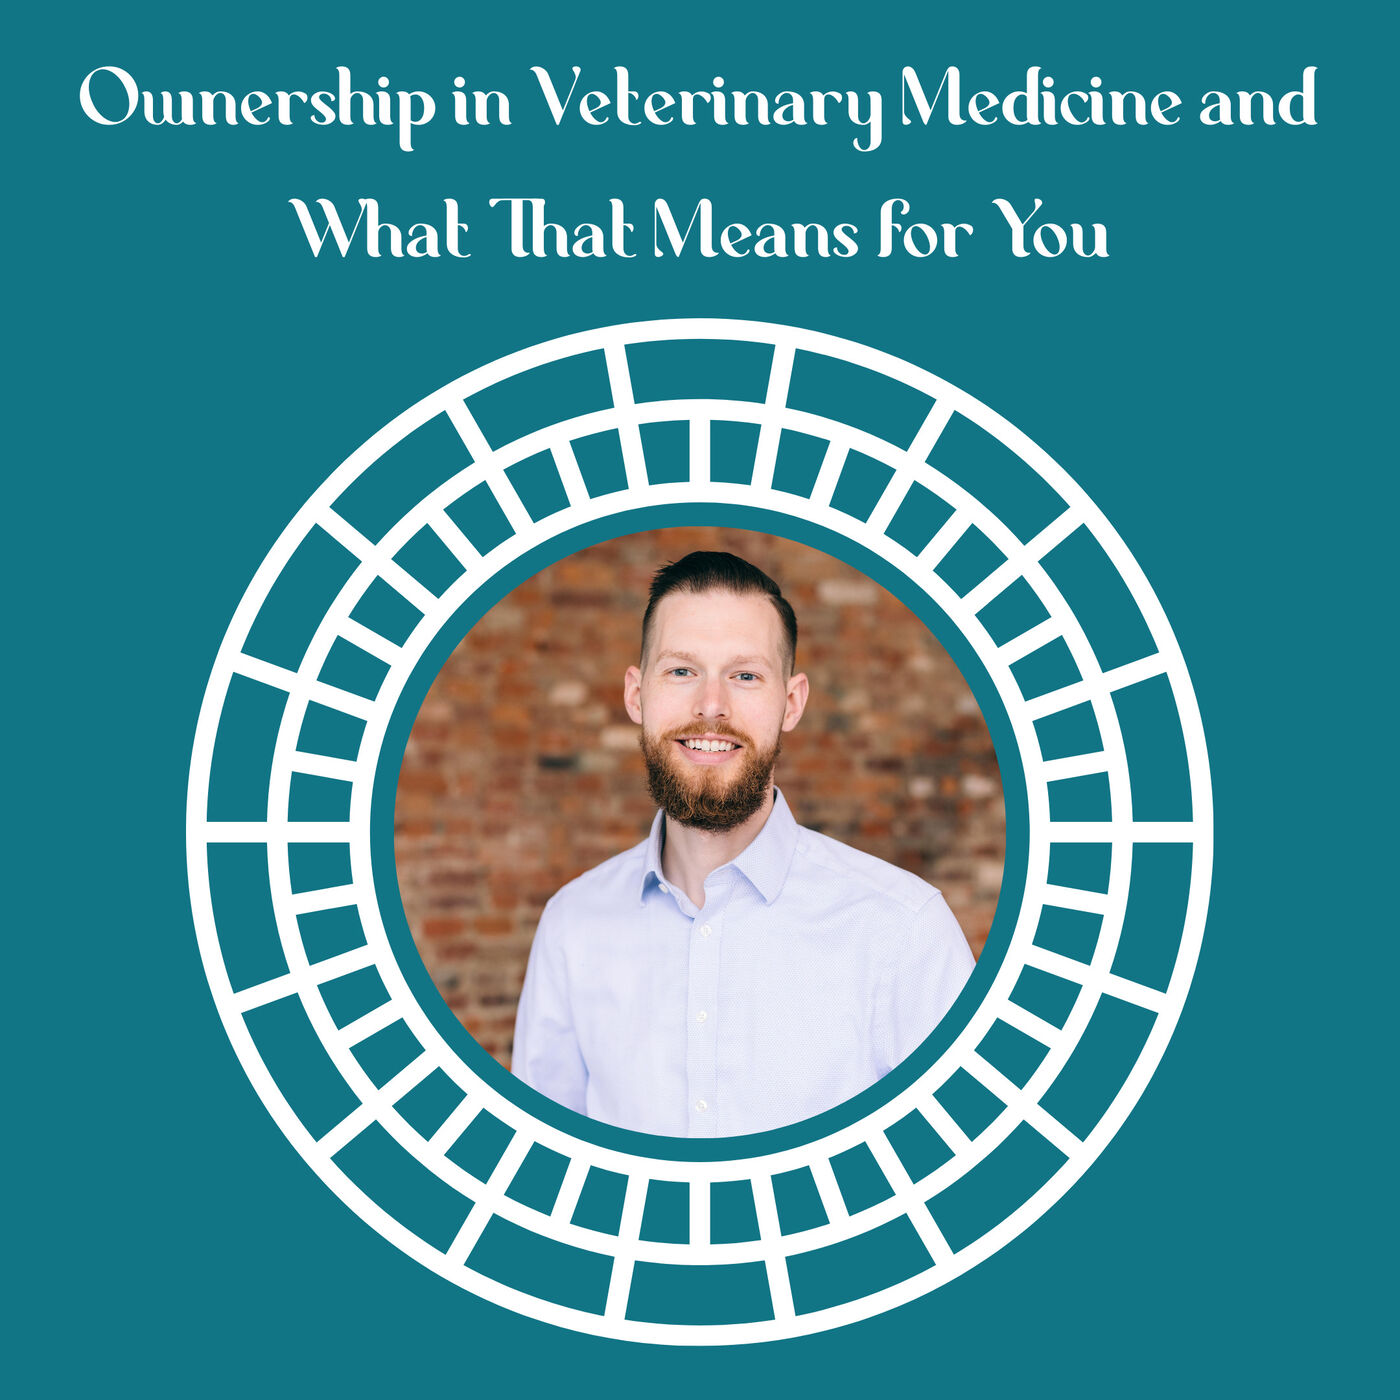 Ownership in Veterinary Medicine and What That Means for You featuring Isaiah Douglass, MBA, CFP, CEPA